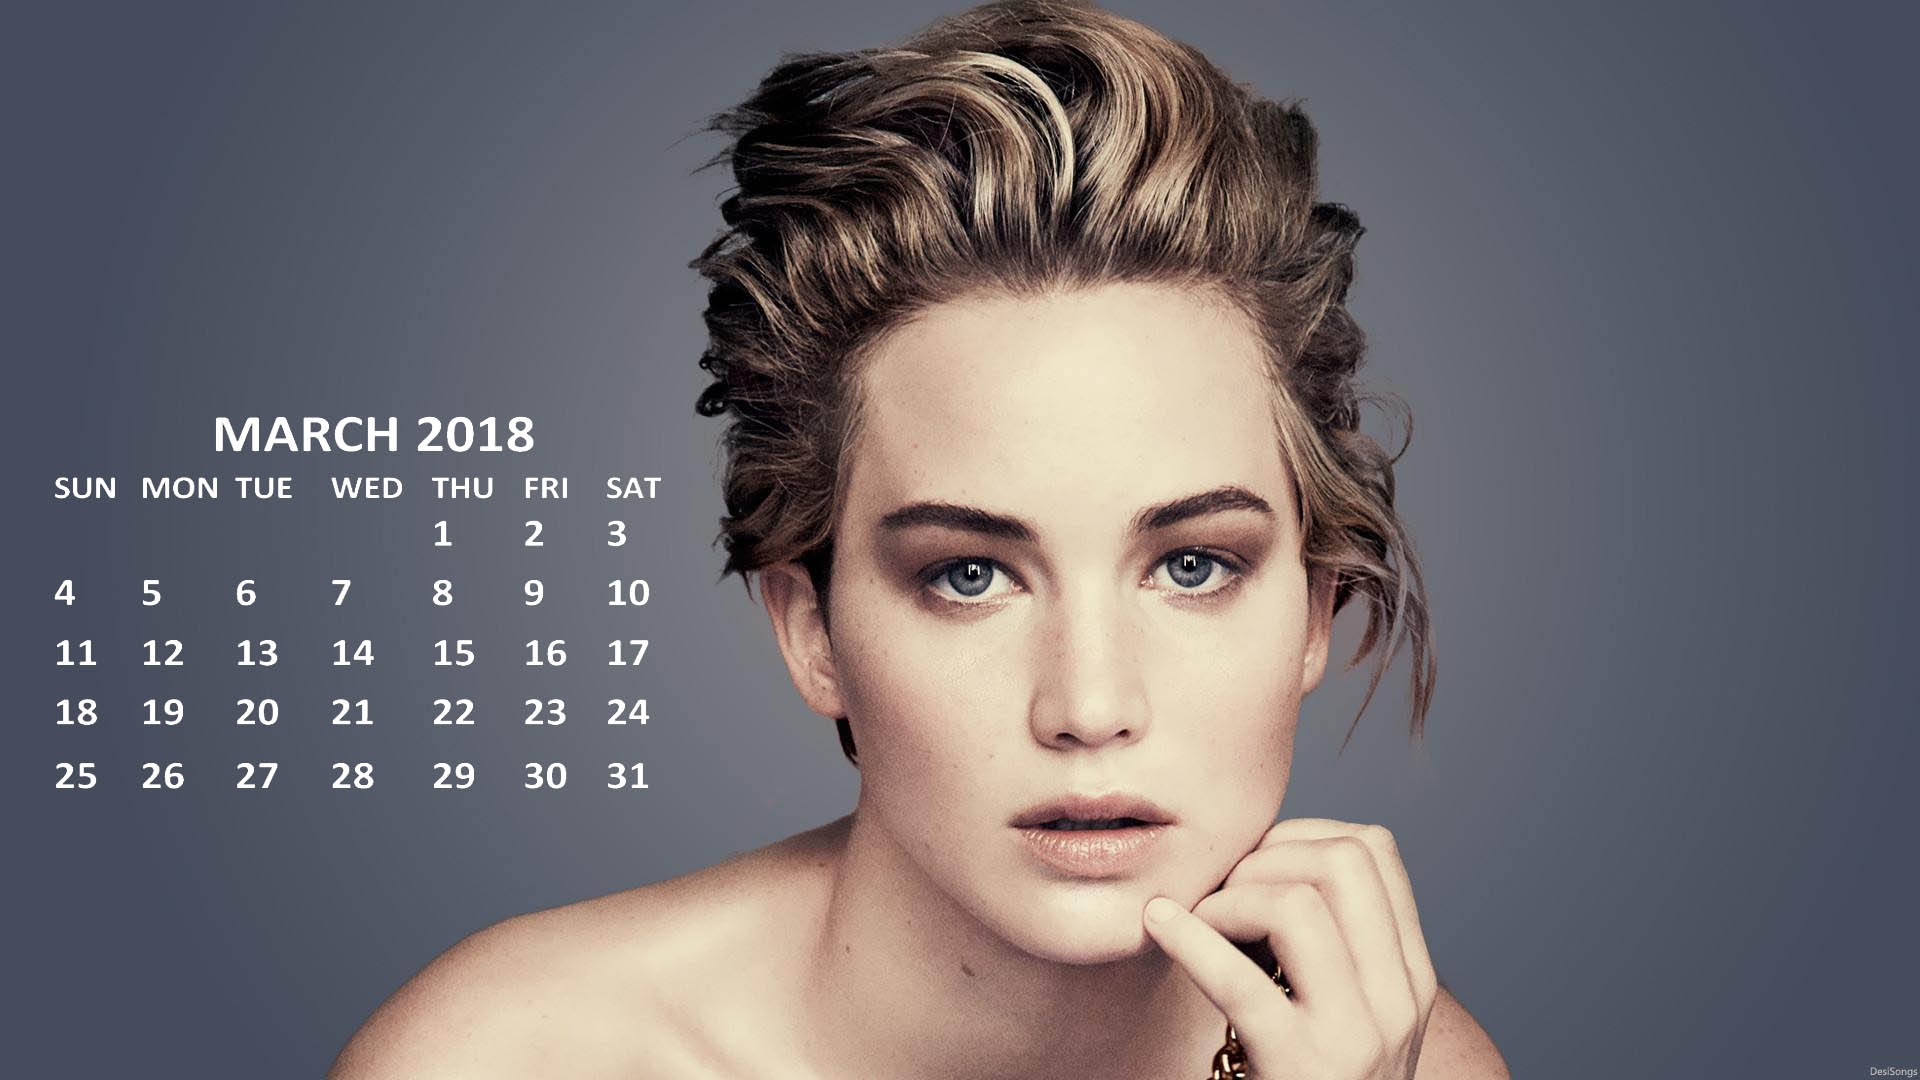 Jennifer Lawrence 2018 Calendars Printable CalendarBuzz 1920x1080